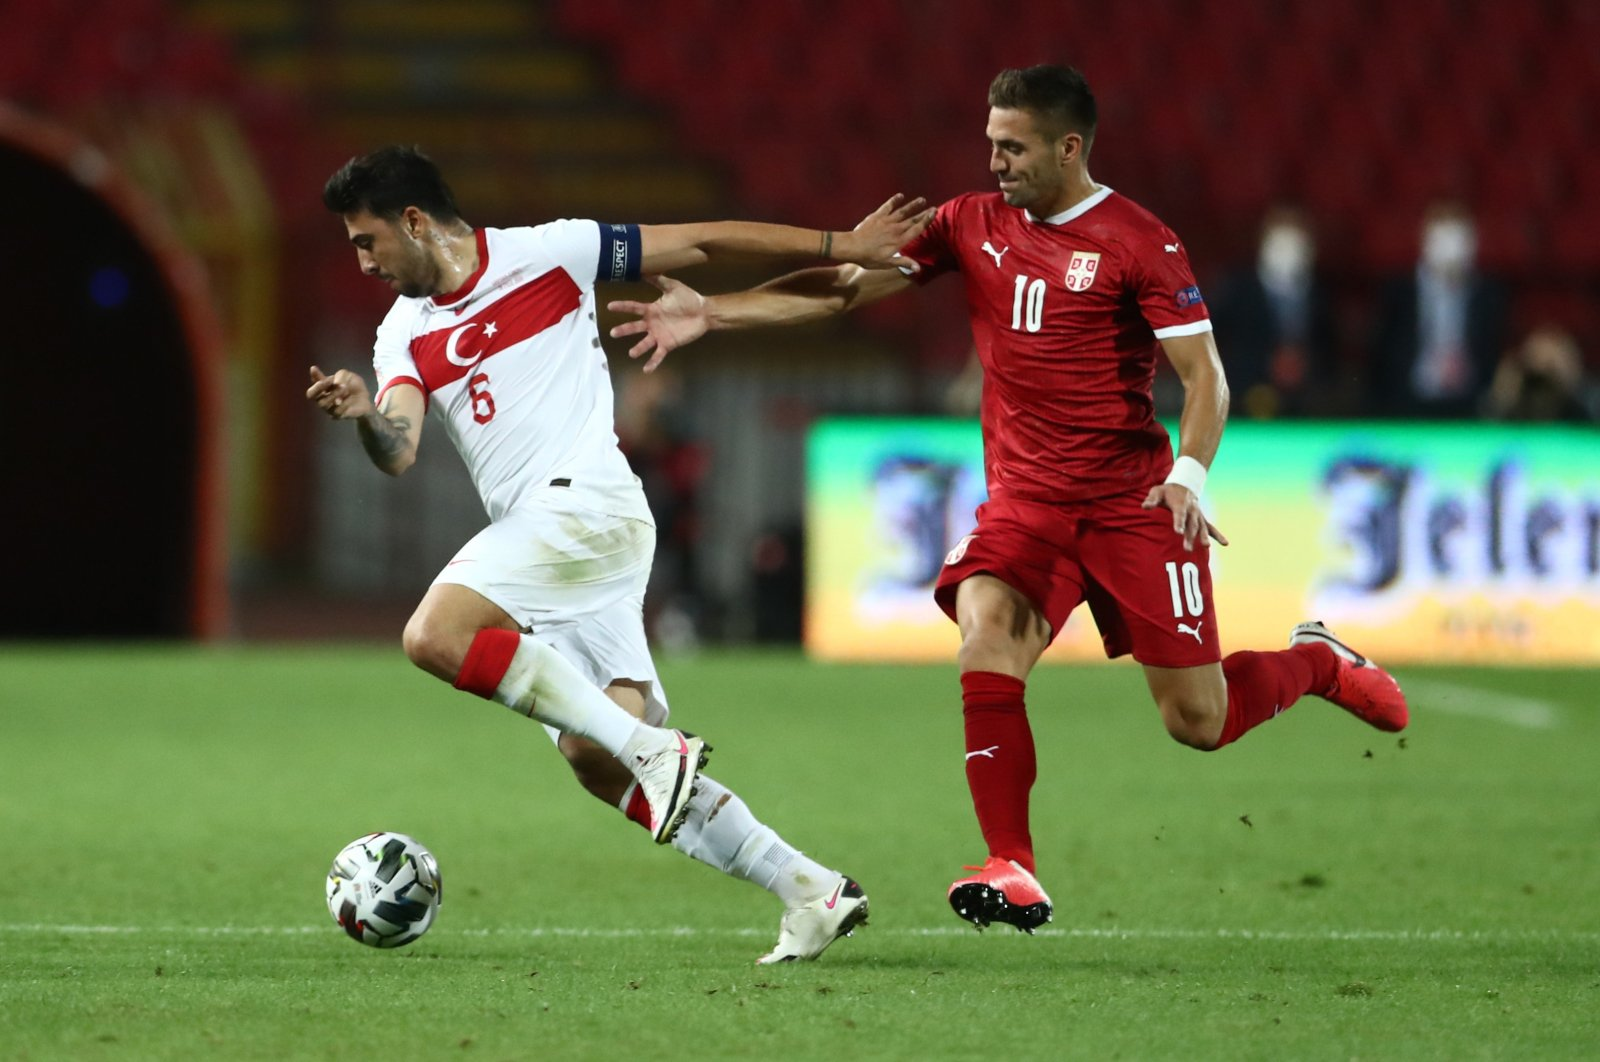 Turkey's Ozan Tufan dribbles past Serbia's Dusan Tadic during a UEFA Nations League match in Belgrade, Serbia, Sept. 6, 2020. (Reuters Photo)